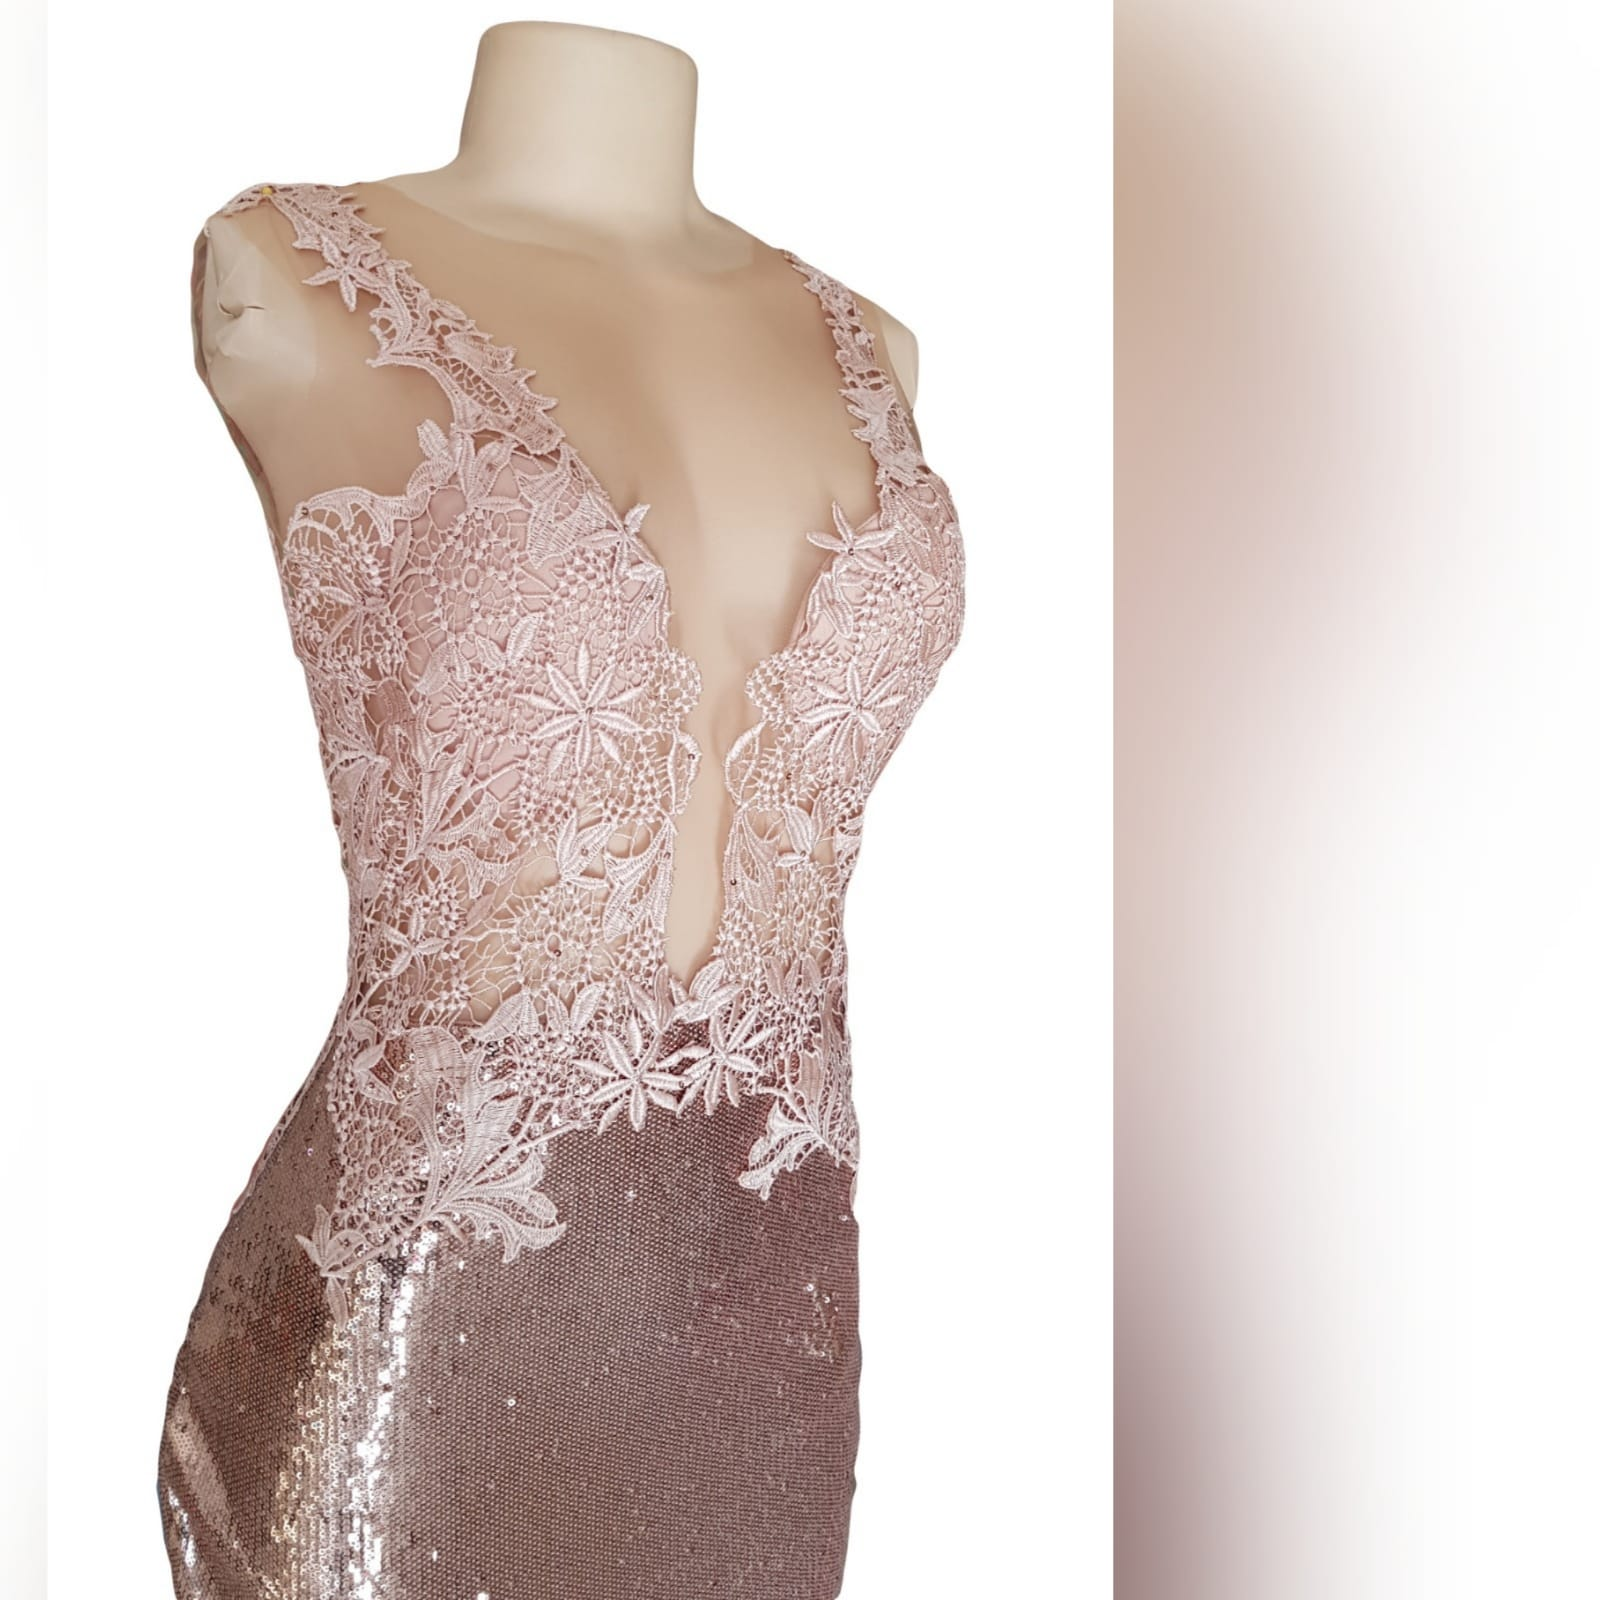 """Rose gold sequins mermaid prom dress with a lace bodice 5 <blockquote>""""make the most of yourself.... For that is all there is of you. """" ralph waldo emerson</blockquote> rose gold sequins mermaid prom dress with a lace bodice, custom made. This gorgeous gown, sparkles slightly adding a touch of drama and importance to the look. Creating an amazing effect when entering the party hall and hitting the dance floor"""